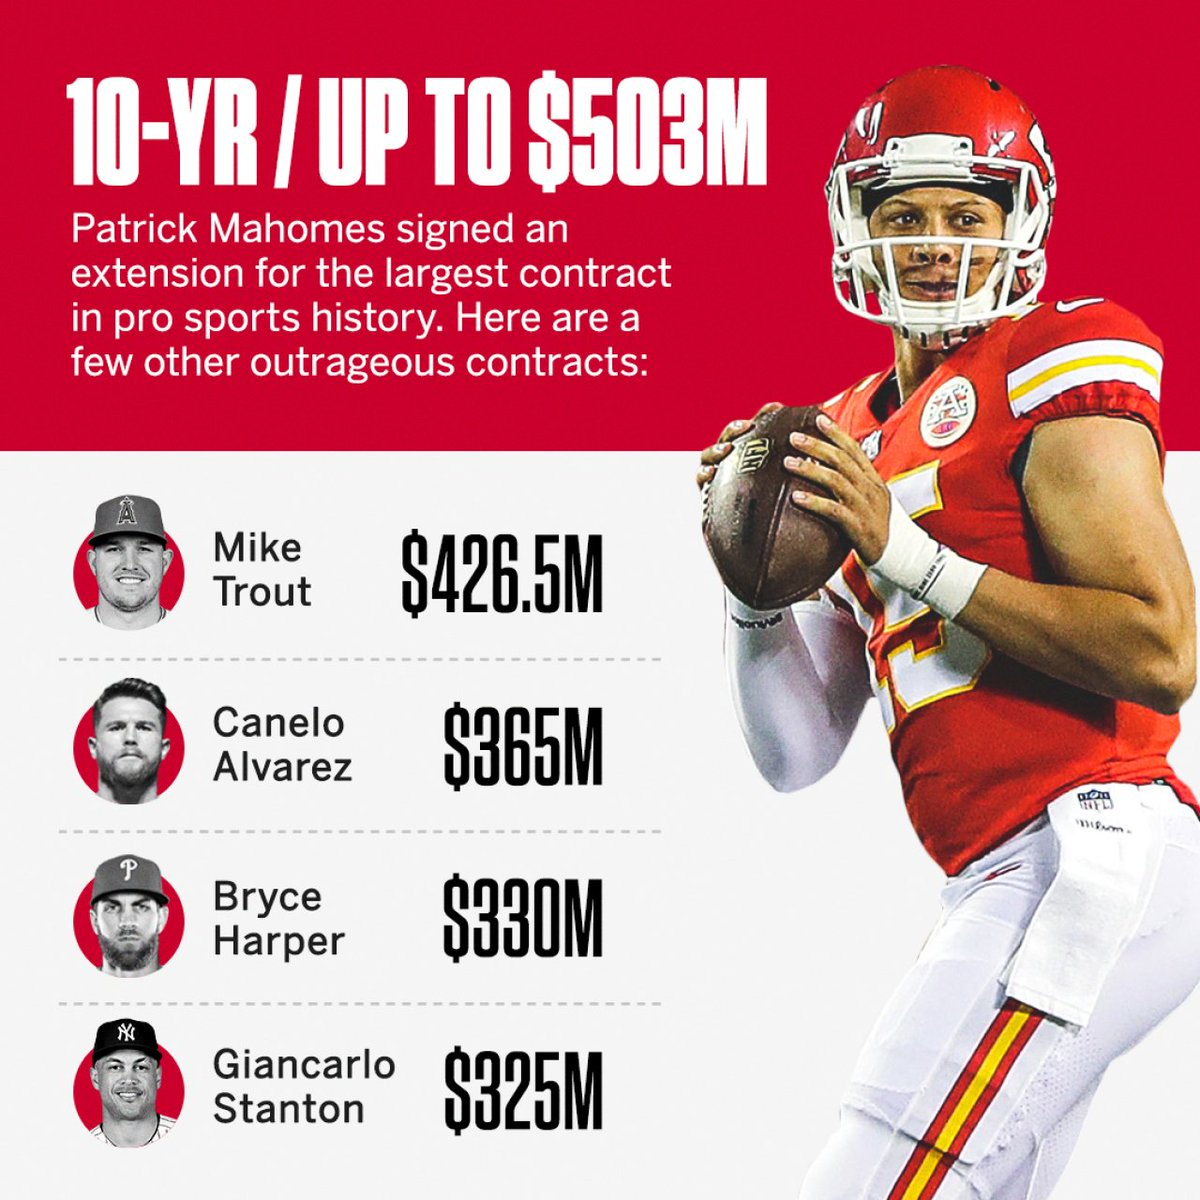 Patrick Mahomes signed a 10-year, $450 million extension that could be worth up to $503 million, per sources. The extension includes a $141.48 million injury guarantee, as well as a no-trade clause. It marks the first time an NFL player has had sports' most lucrative deal. https://t.co/kohX8rFSFN